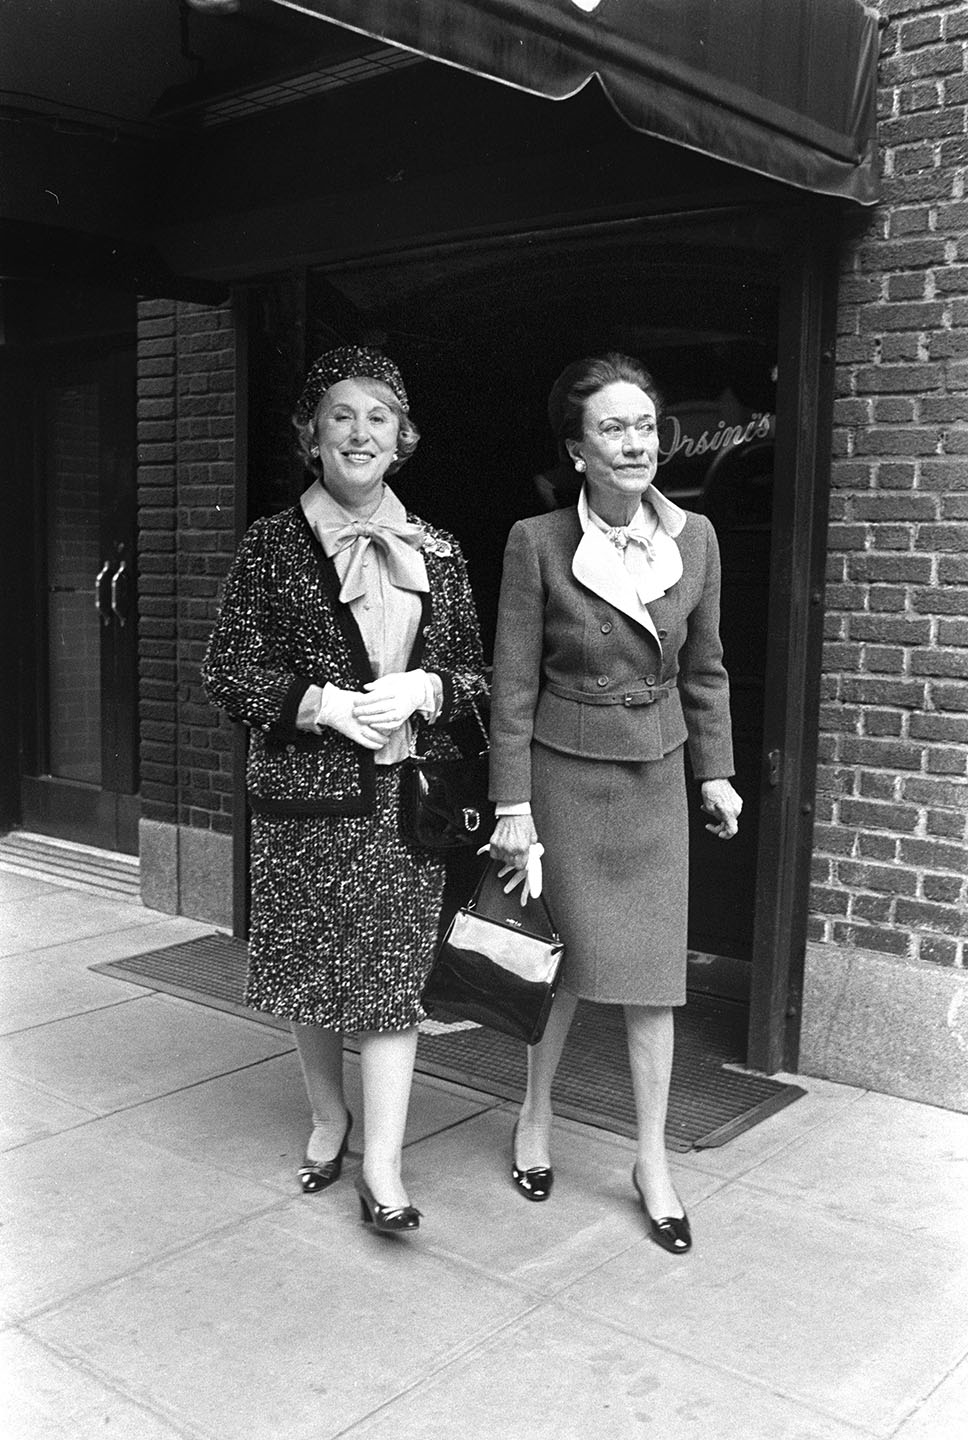 Estee Lauder and The Duchess of York, Wallis Simpson at Orsini's Restaurant in New York, 1974.